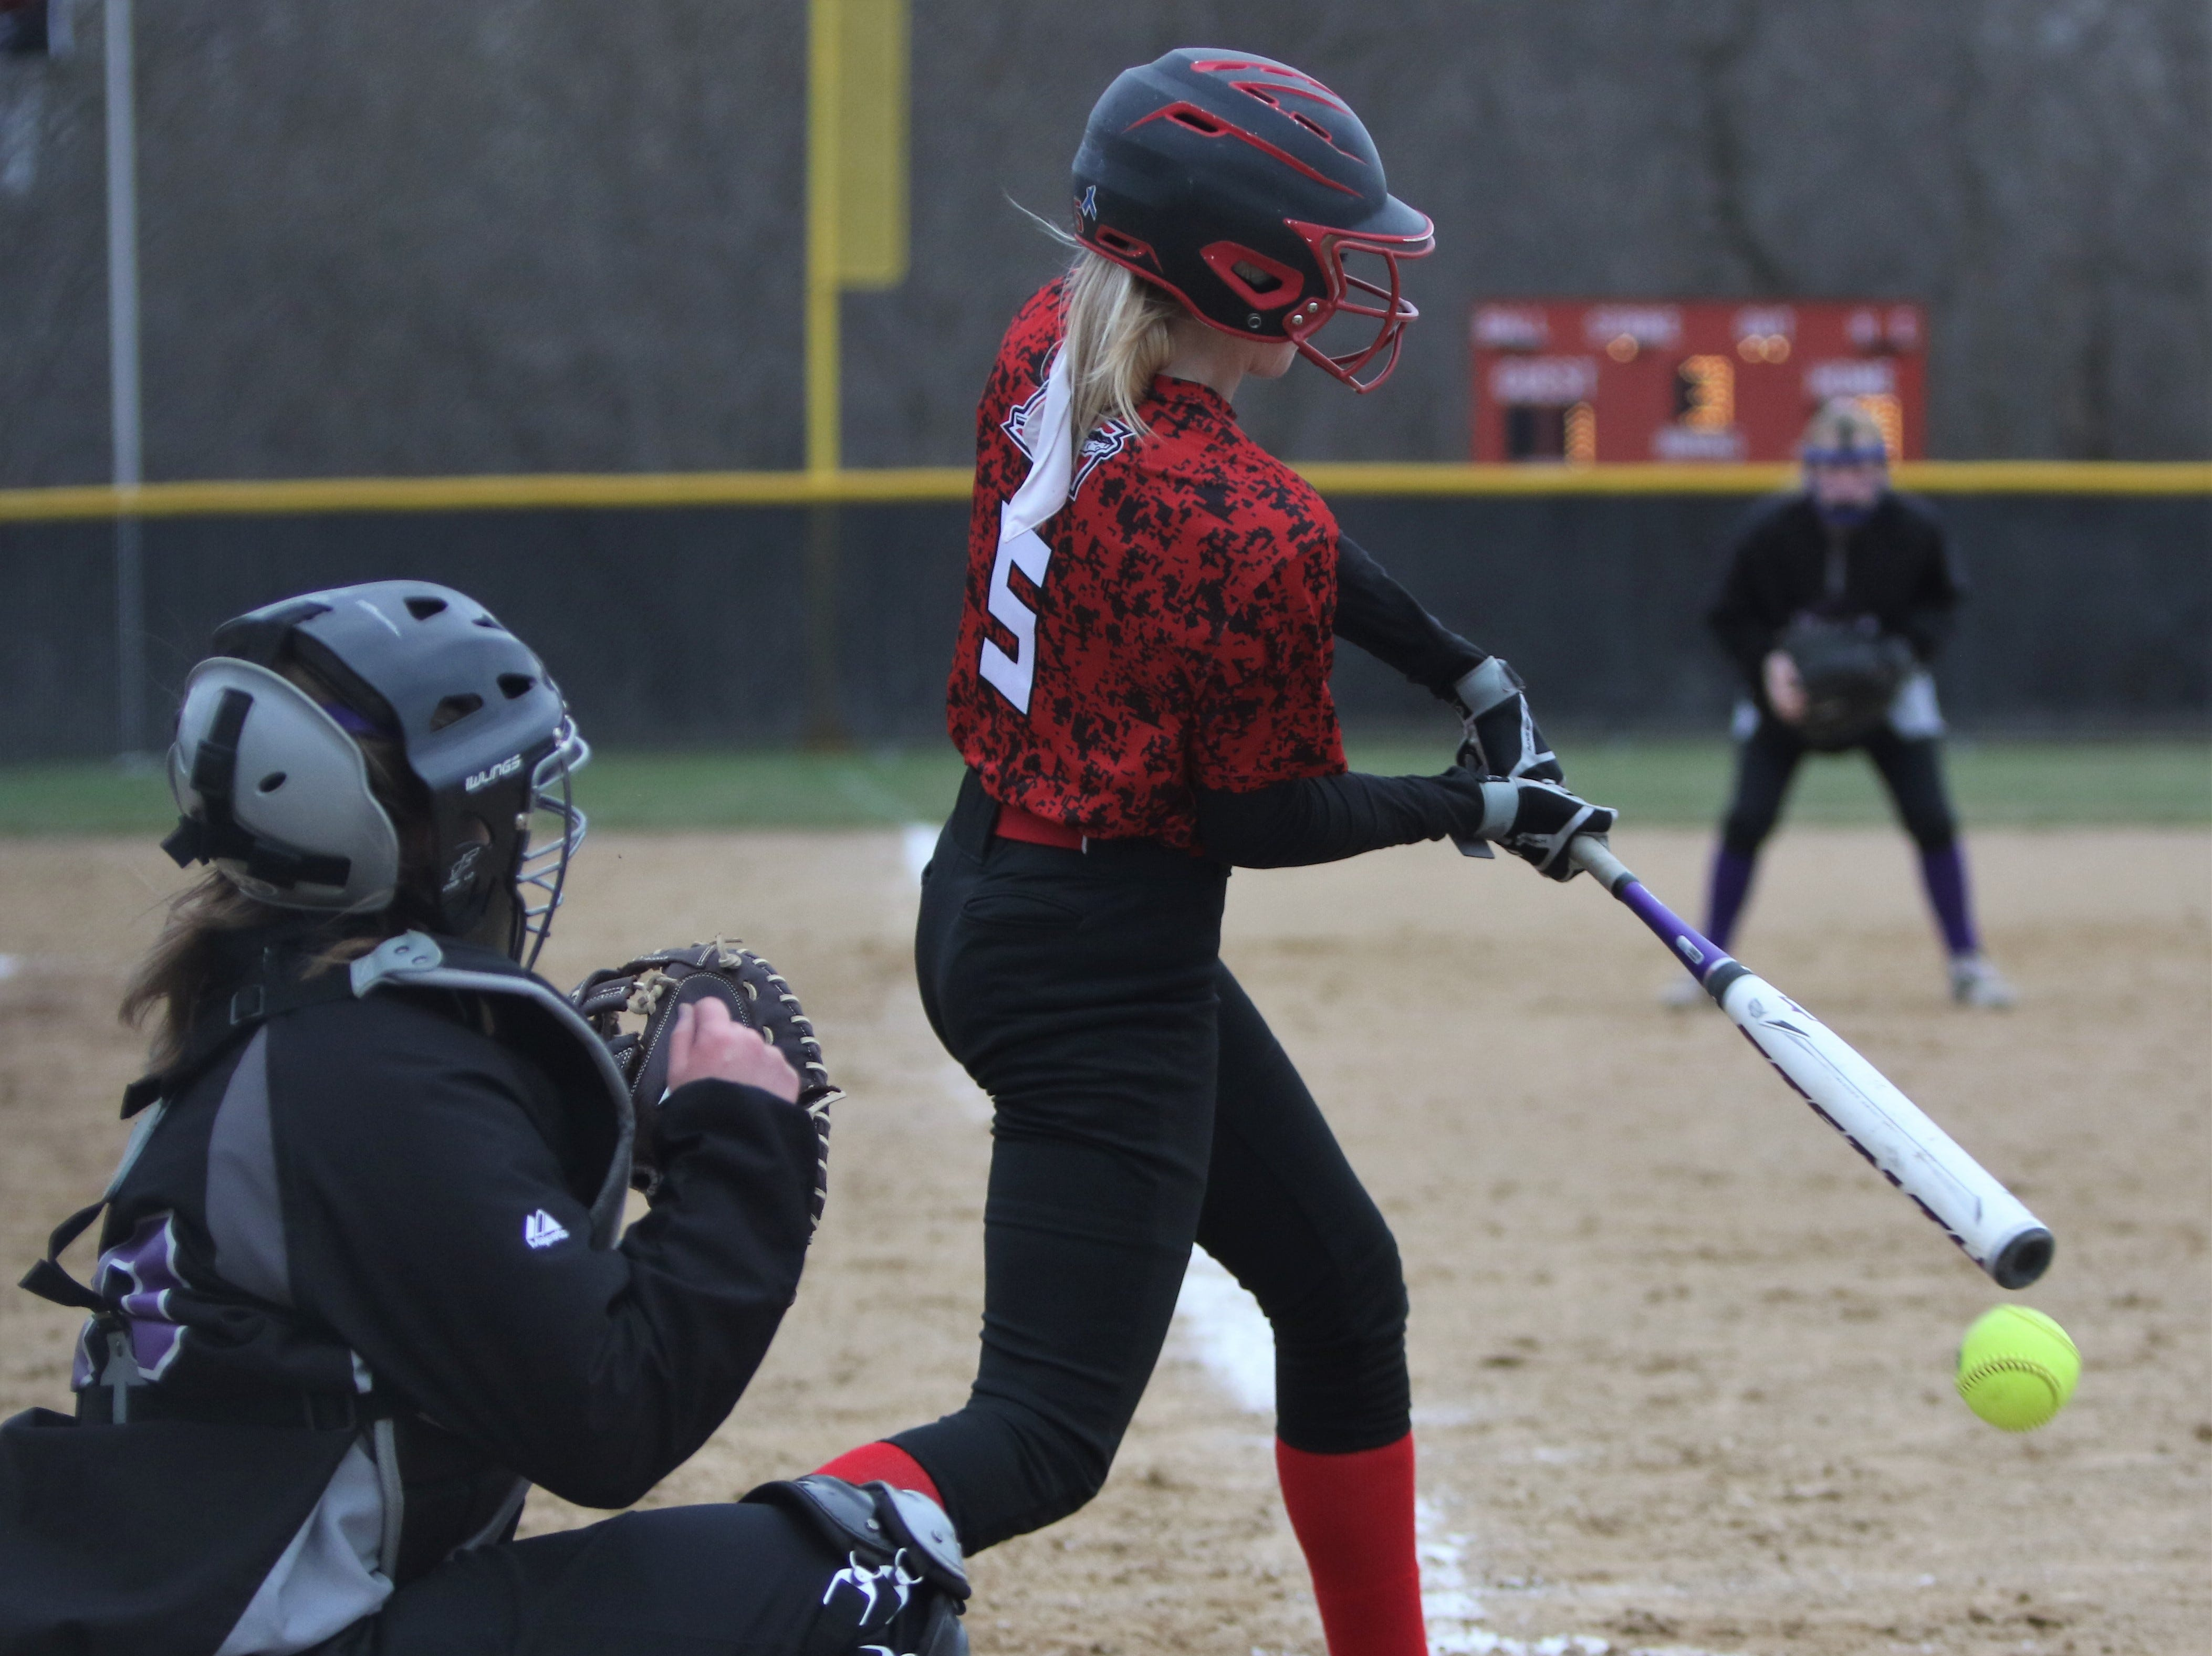 Muskego's Makayla Terrence pounds a ground ball into the dirt against Waukesha North on April 12, 2019.